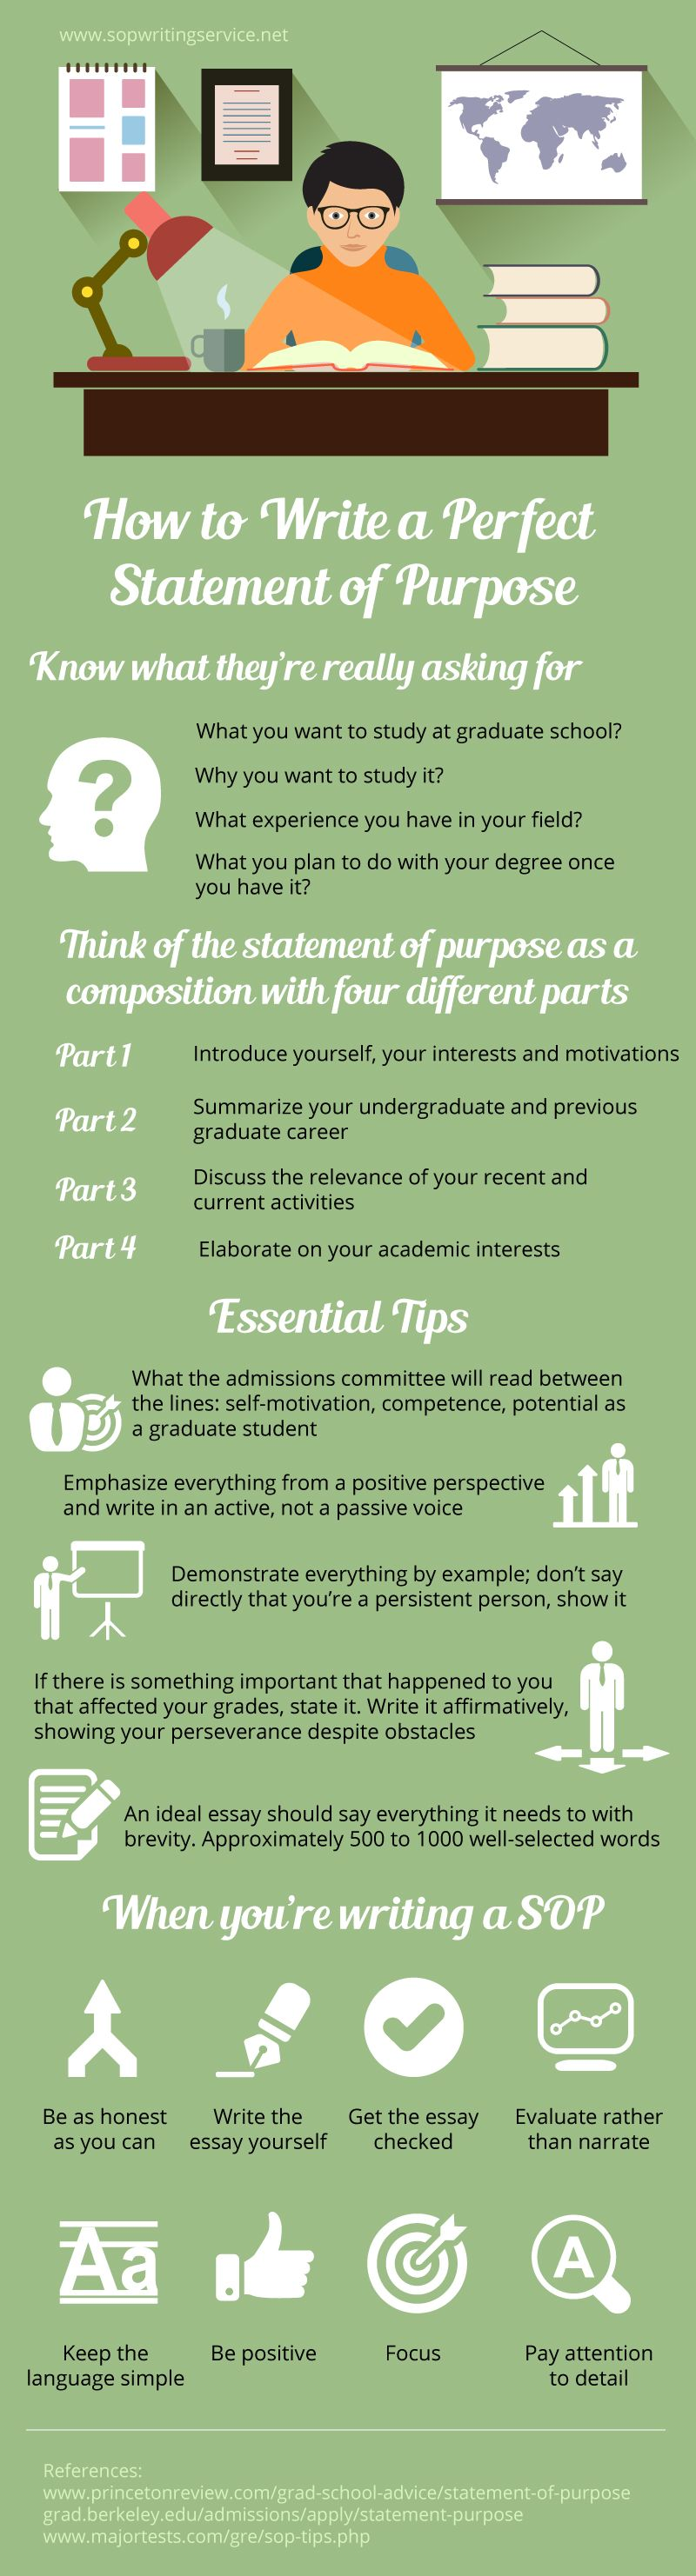 how to write a perfect statement of purpose how to or steps this infographic presentation presents on how to write a perfect statement of purpose to get more details please today on this link